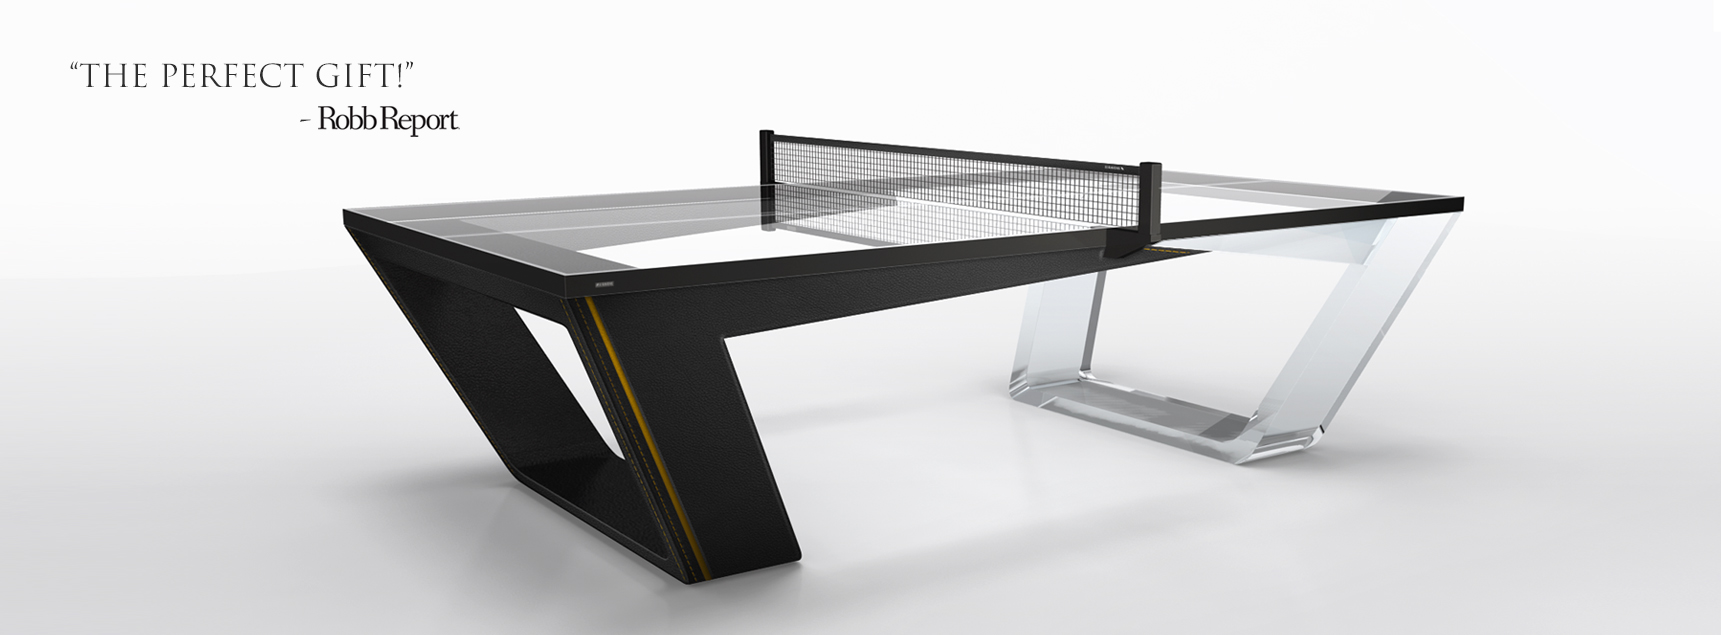 Avettore - AEREO LIMITED EDITION TABLE TENNIS TABLE